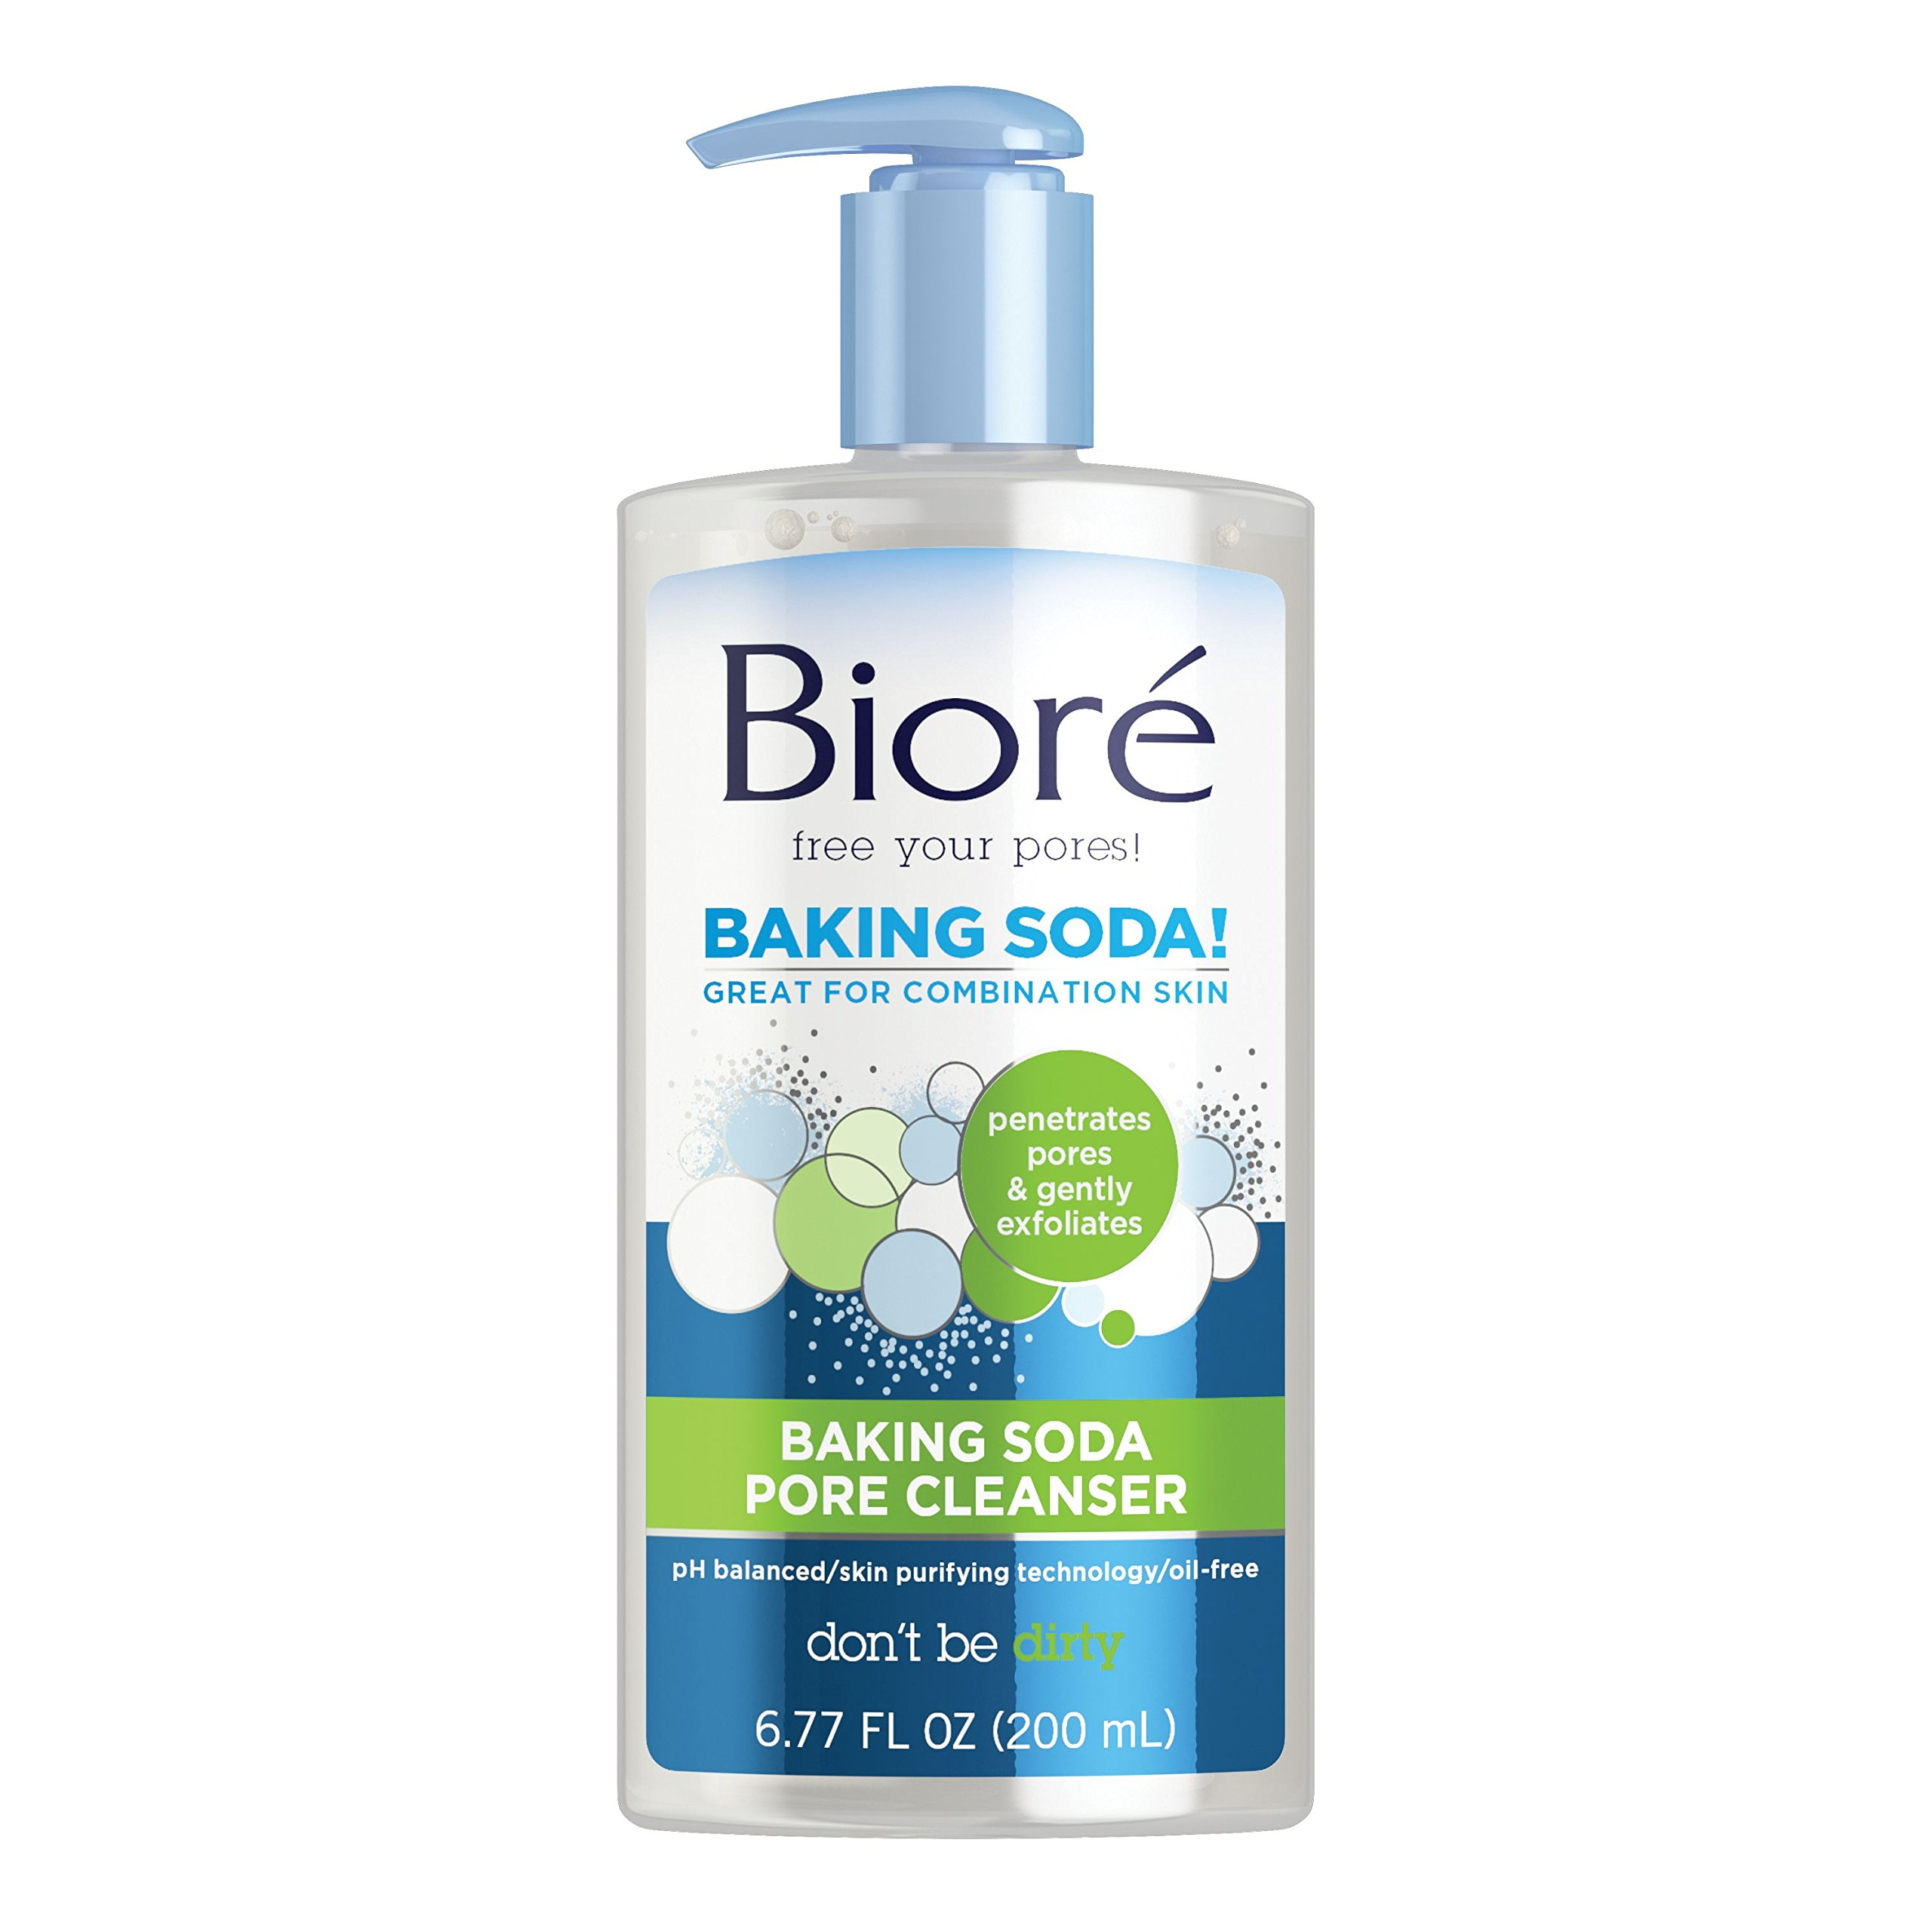 Biore Baking Soda Pore Cleanser for Combination Skin, 6.77 Ounces